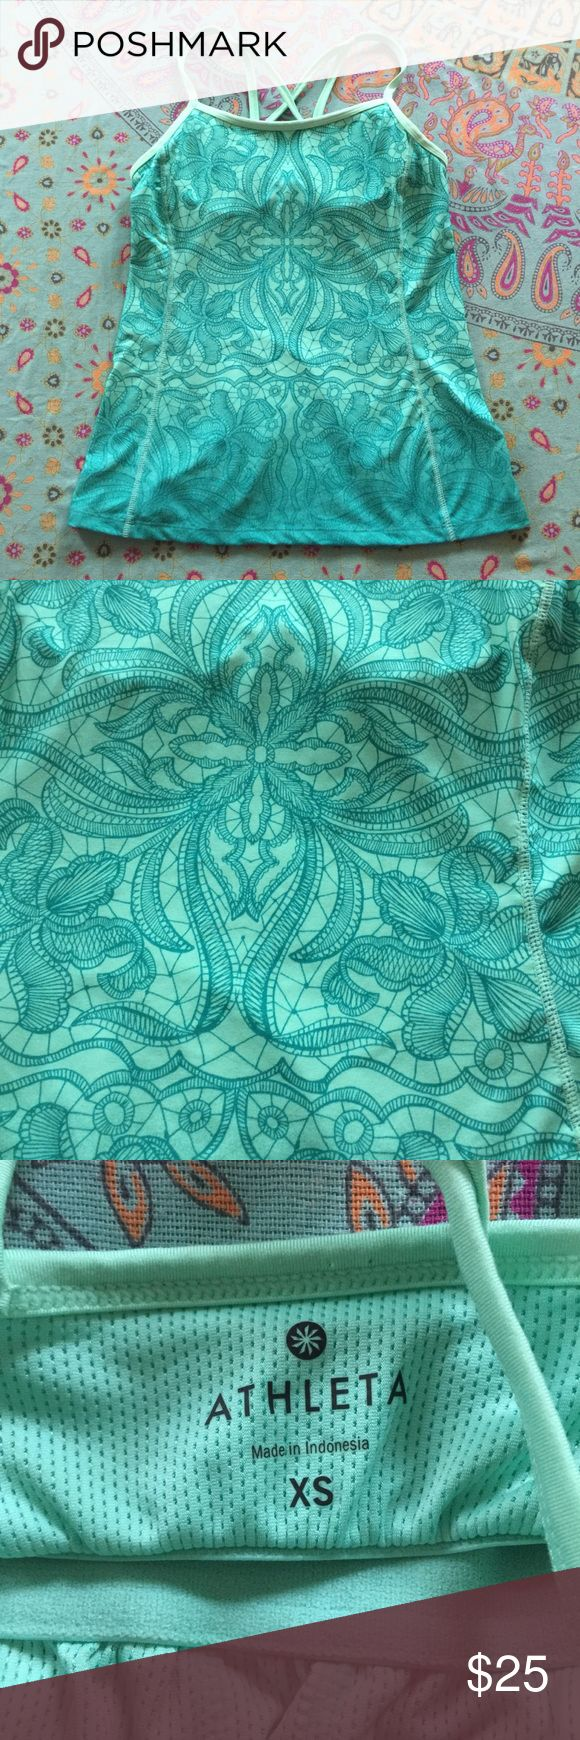 Athleta Teal Printed Harmonious Shelf Bra Top Athleta Teal Printed Harmonious Cami Yoga Shelf Bra Strappy Top Size XS MSRP $54 . OPEN TO REASONABLE OFFERS! Athleta Tops Tank Tops